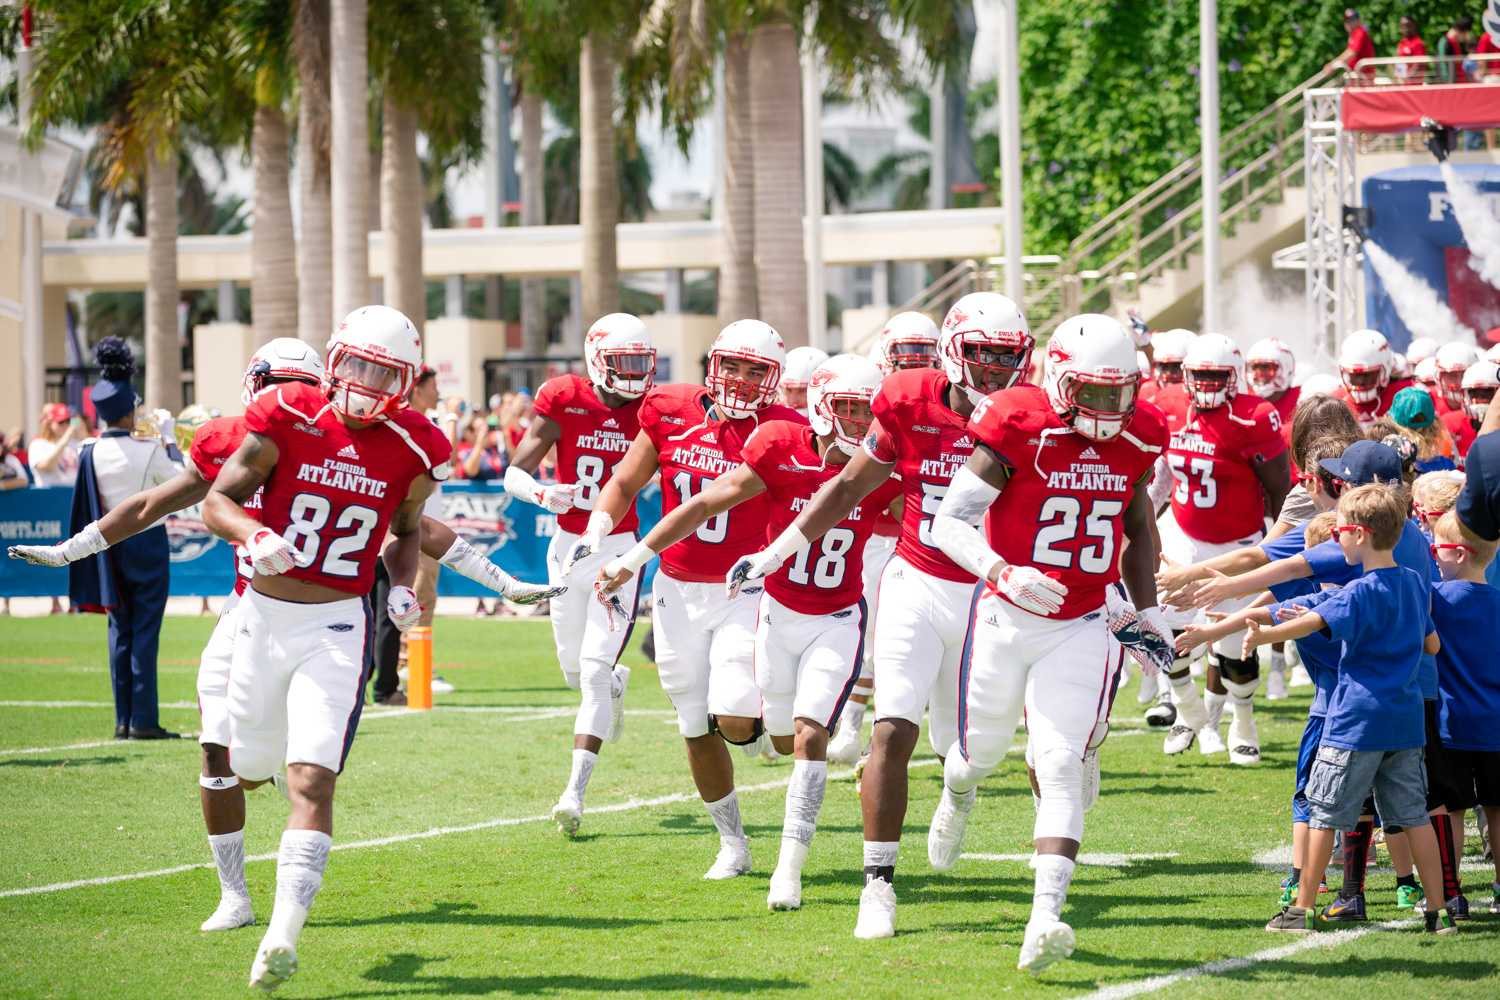 FAU Owls high-five fans as they make their way on to the field at the start of the game against the Buffalo Bulls Saturday afternoon. Brandon Harrington | Photo Editor